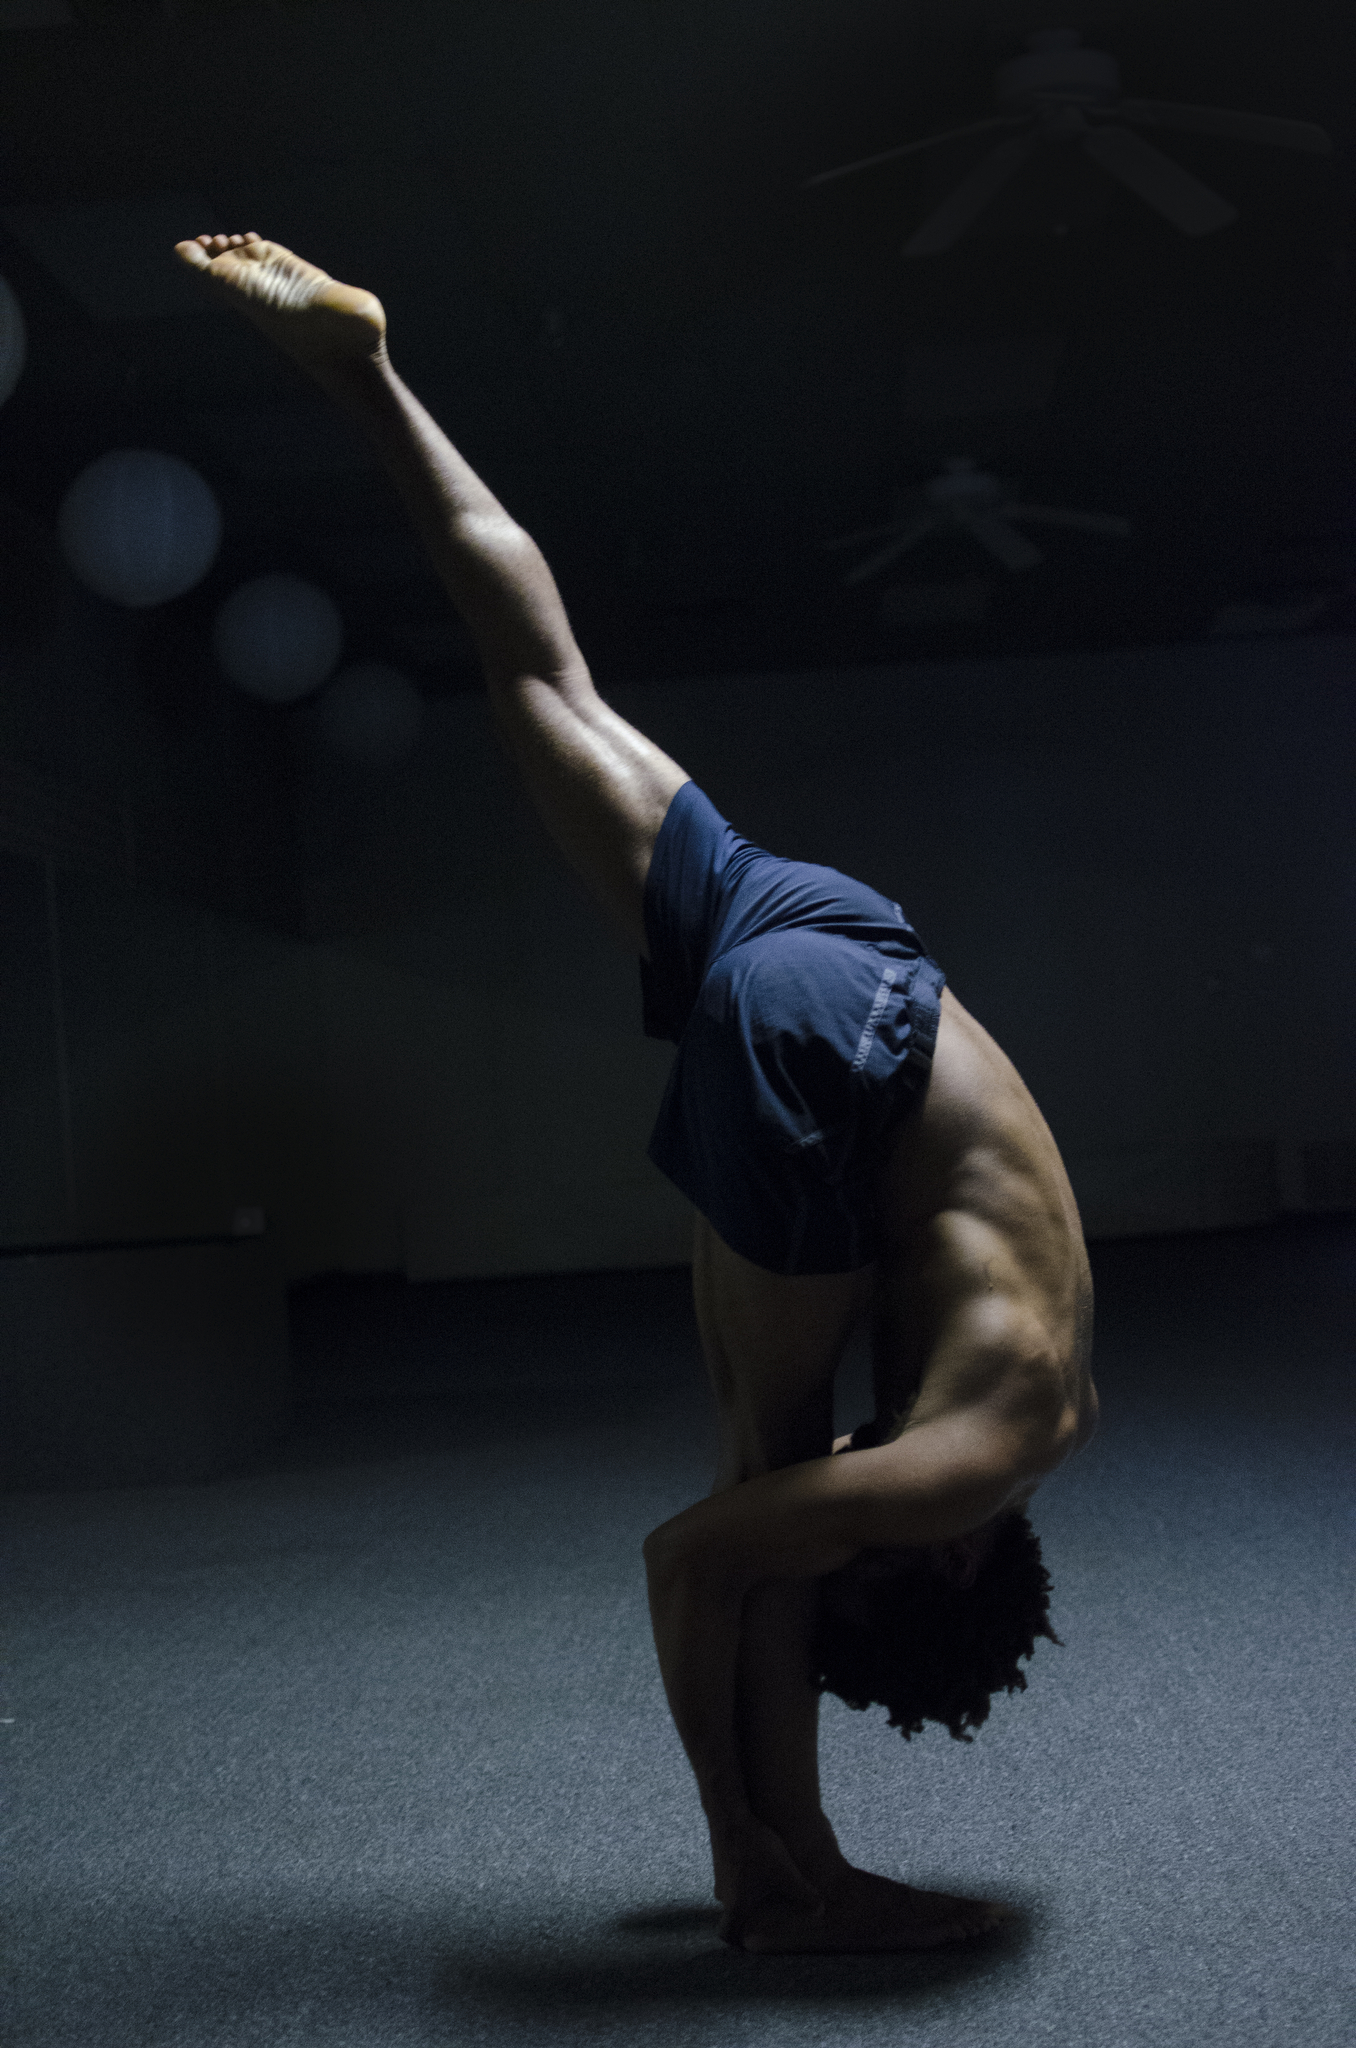 After teaching two hot yogaclasses in one day, Joel Lindo performs advanced level poses in the studio.